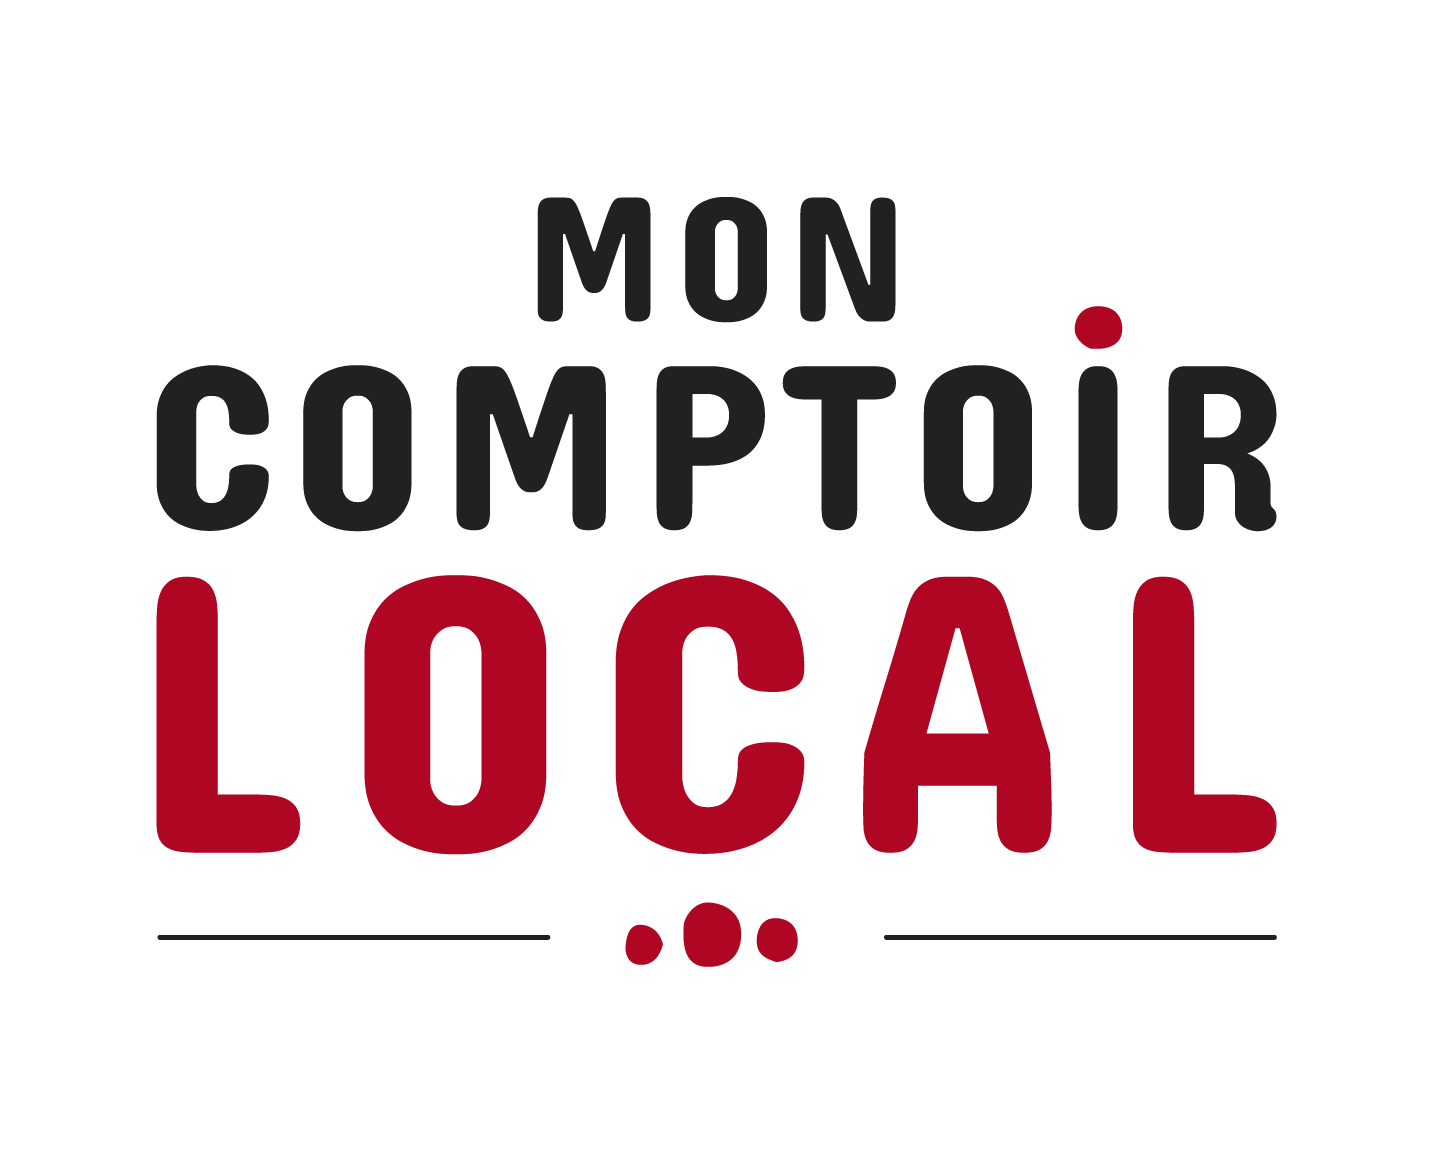 Mon Comptoir Local